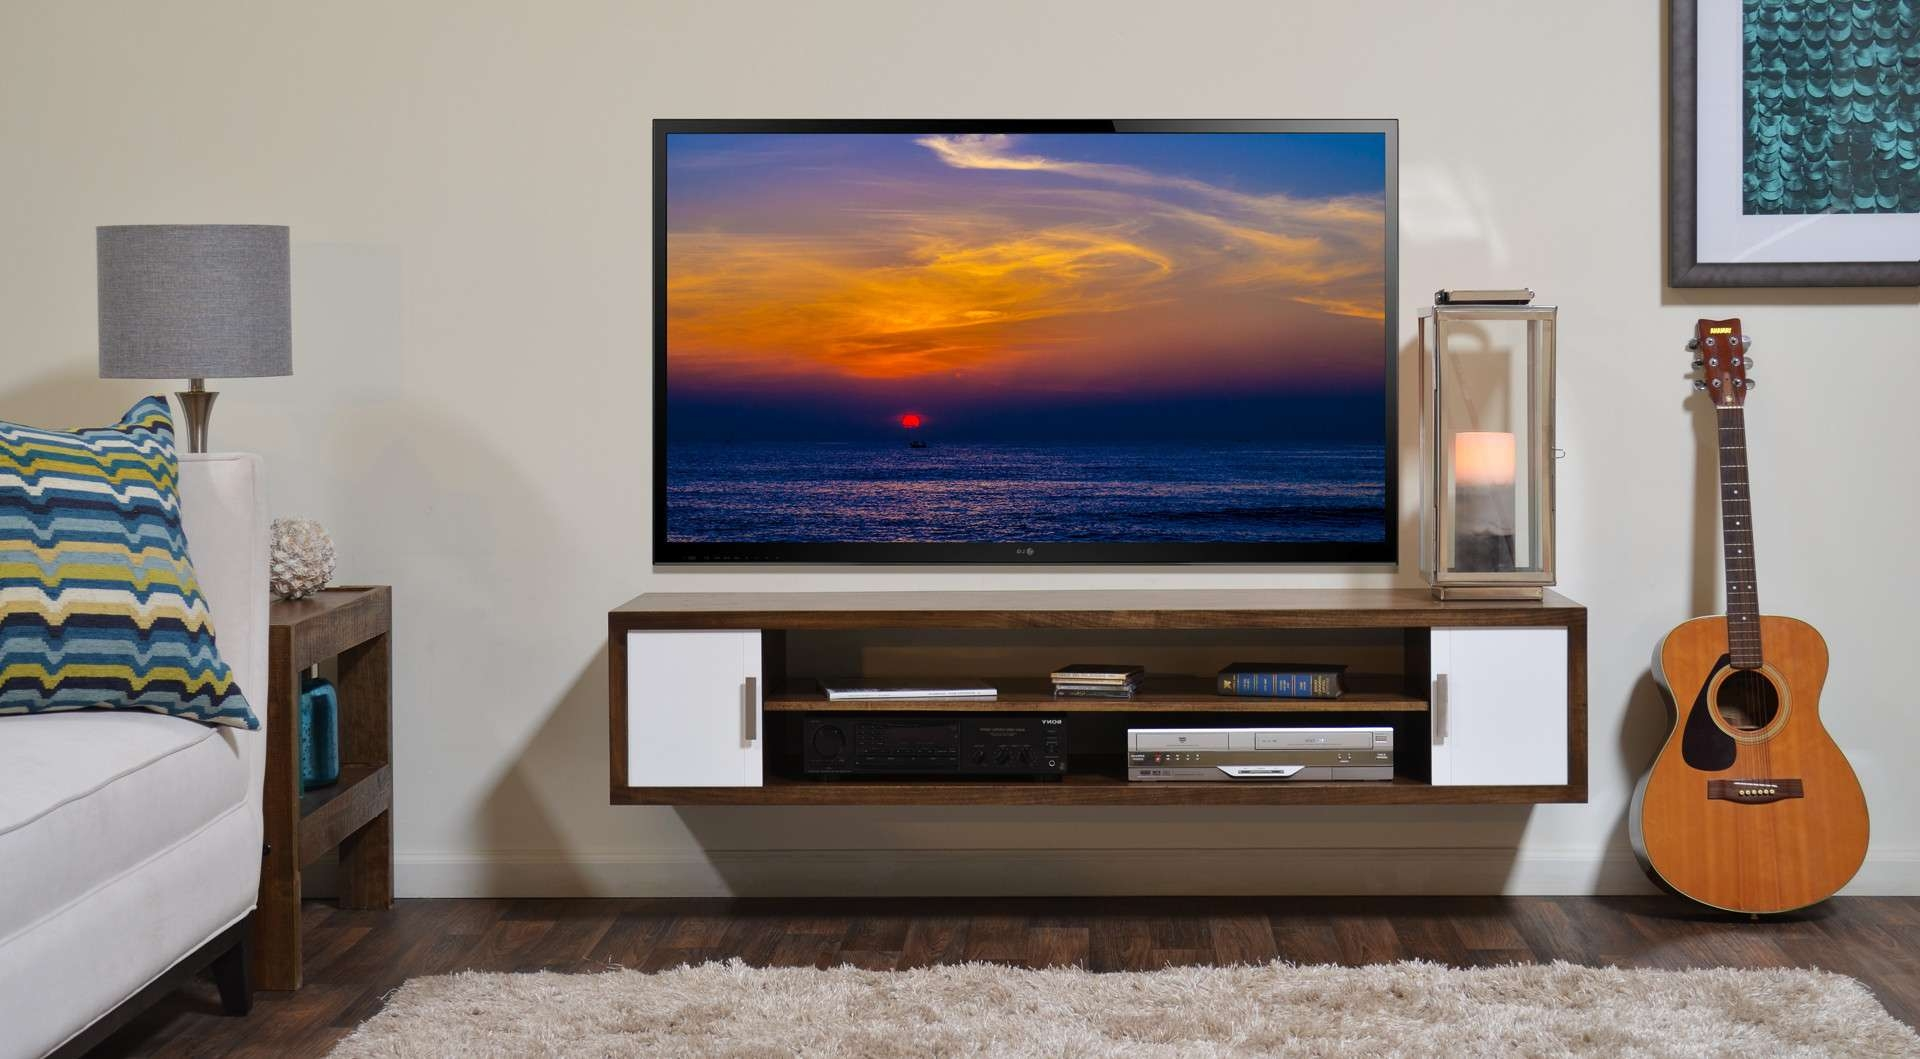 Nice Design Of The Tv Stand White Wall Can Be Decor With Wooden Inside White Wall Mounted Tv Stands (View 8 of 15)